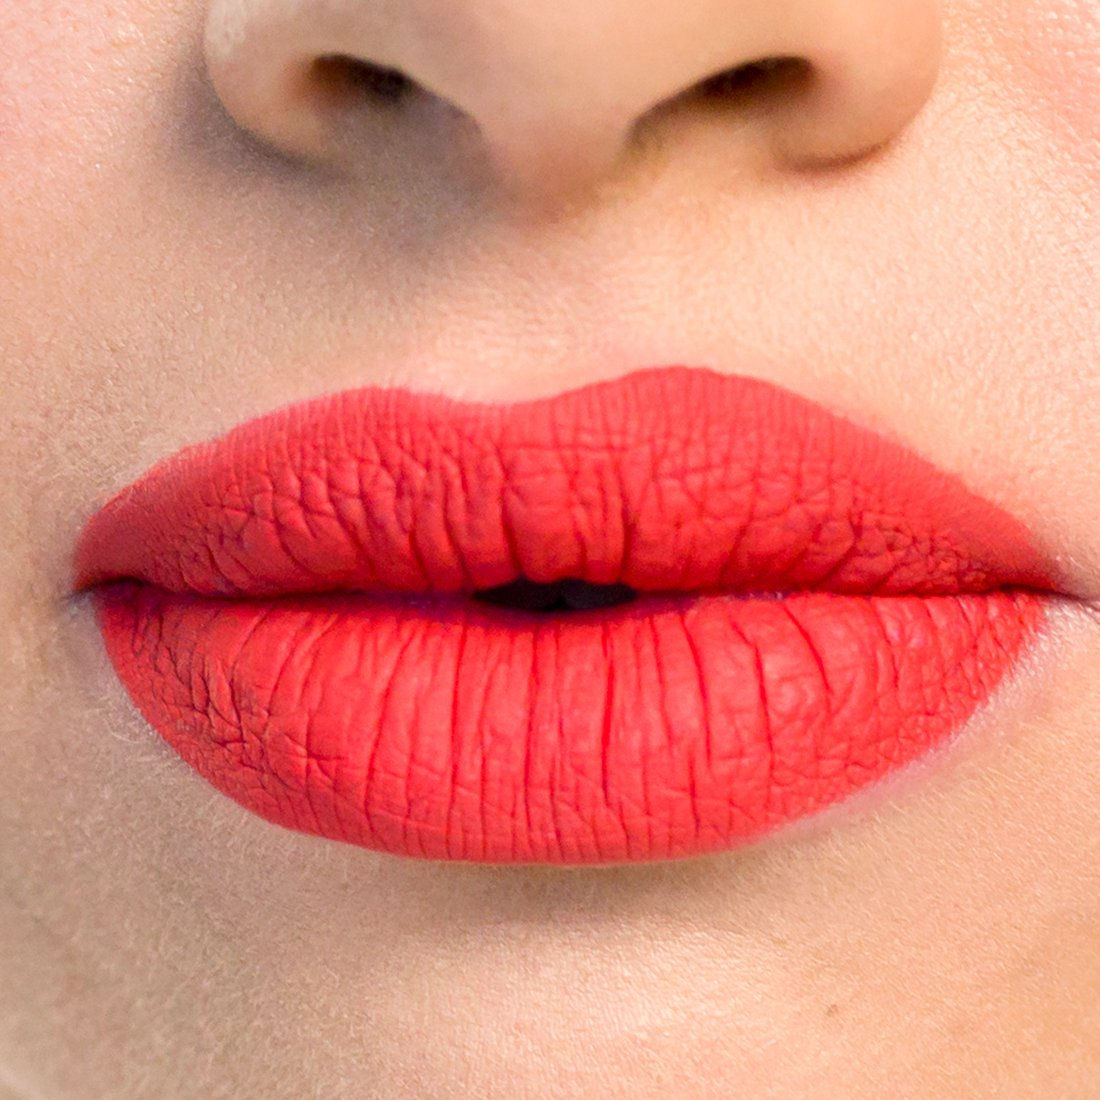 Labial - LM17 Summer Sunset CORAL